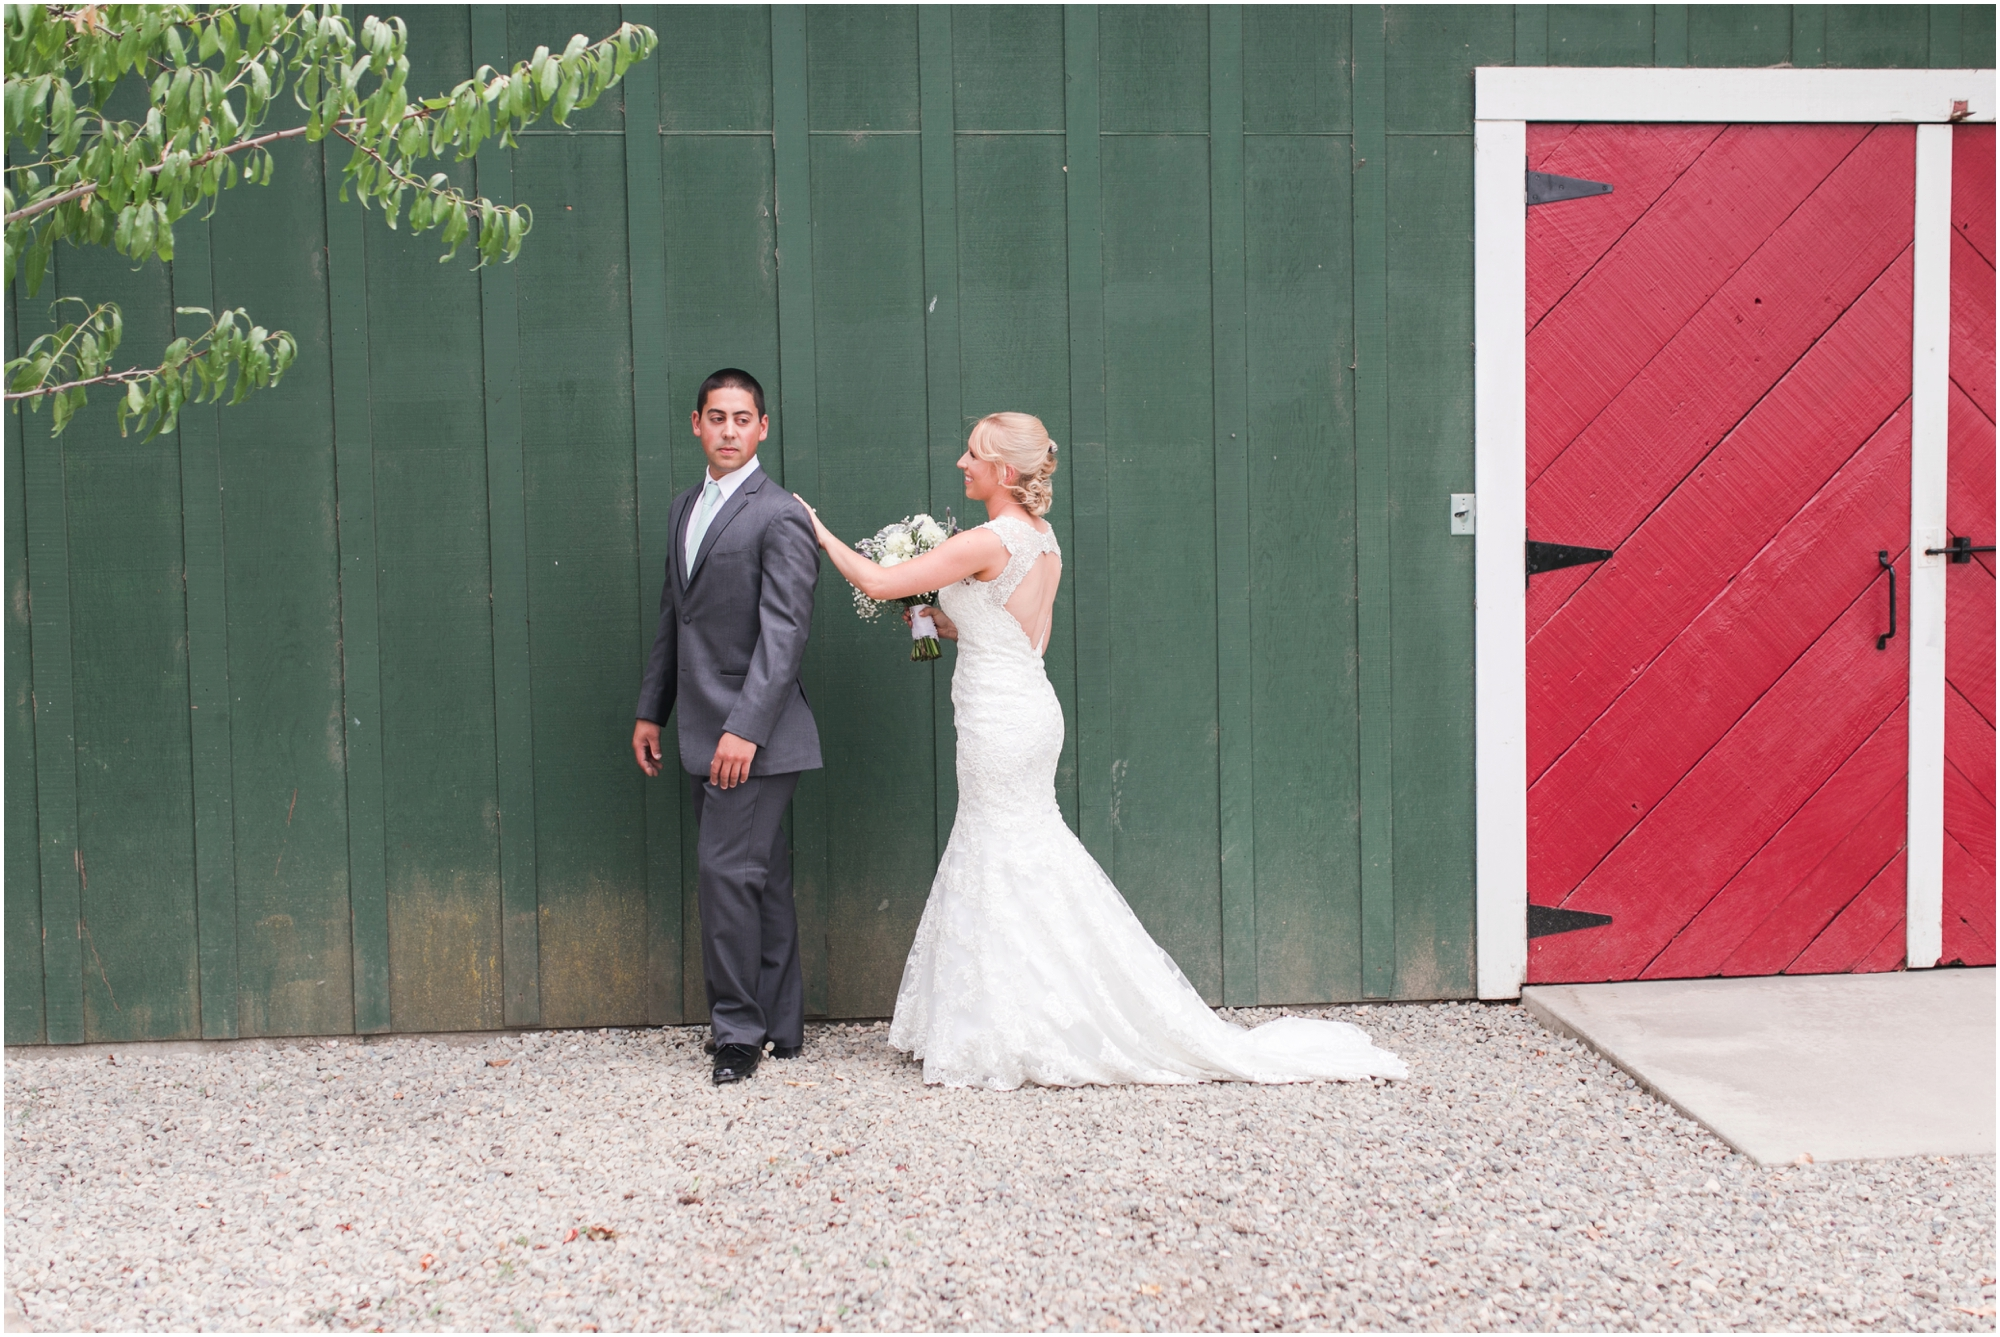 Retzlaff Winery wedding pictures by Briana Calderon Photography_2266.jpg